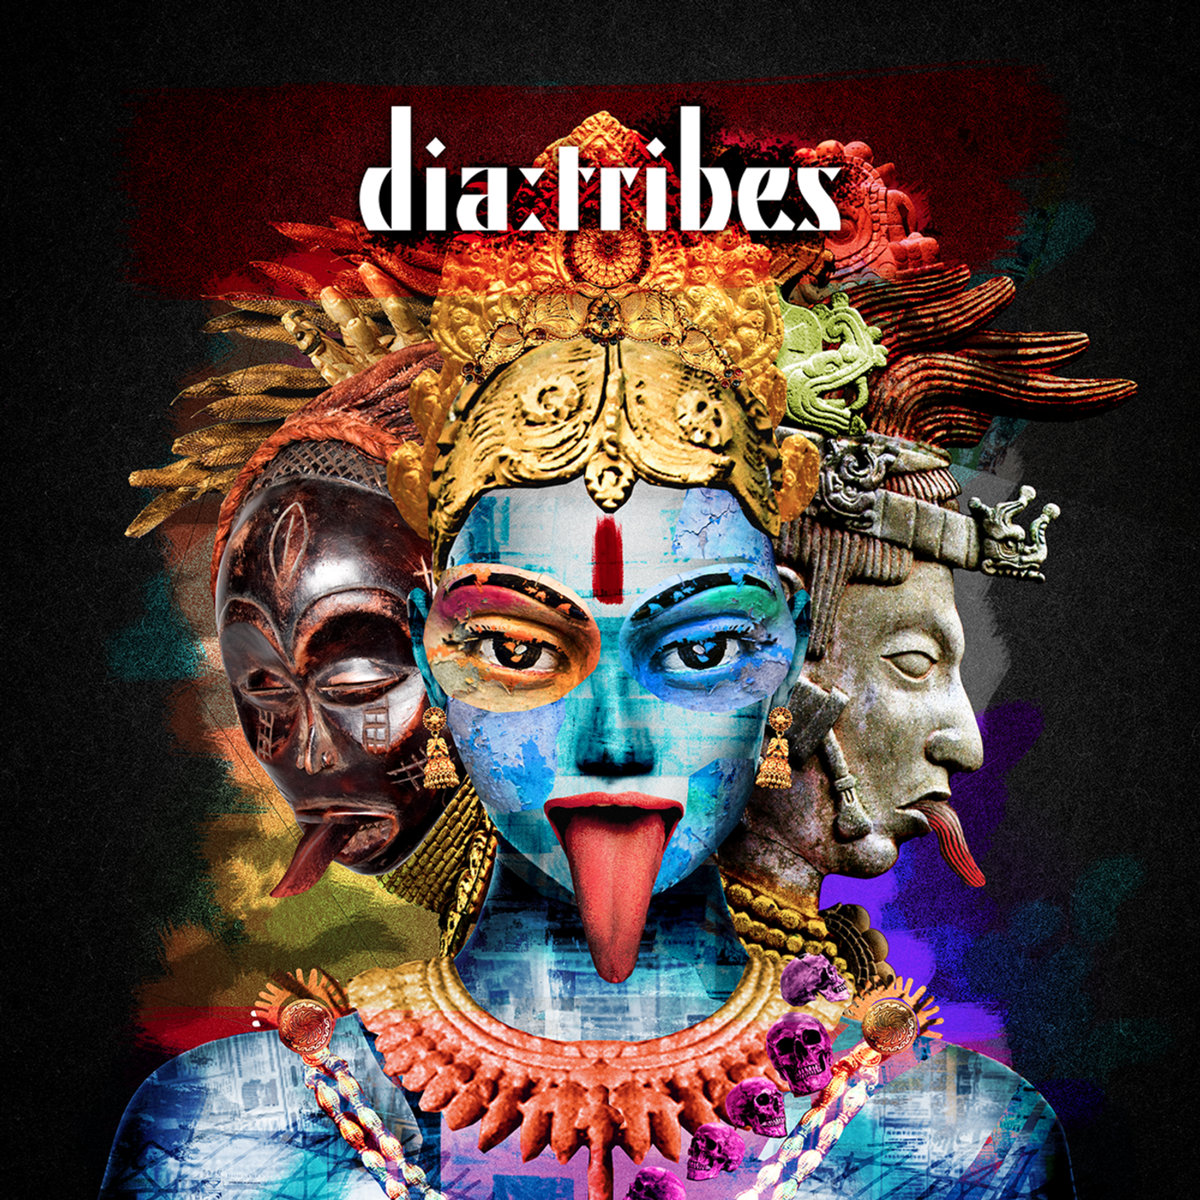 Videotime with Lua Prata - Ta Bater and a new Global Bass Compilation Dia:Tribes